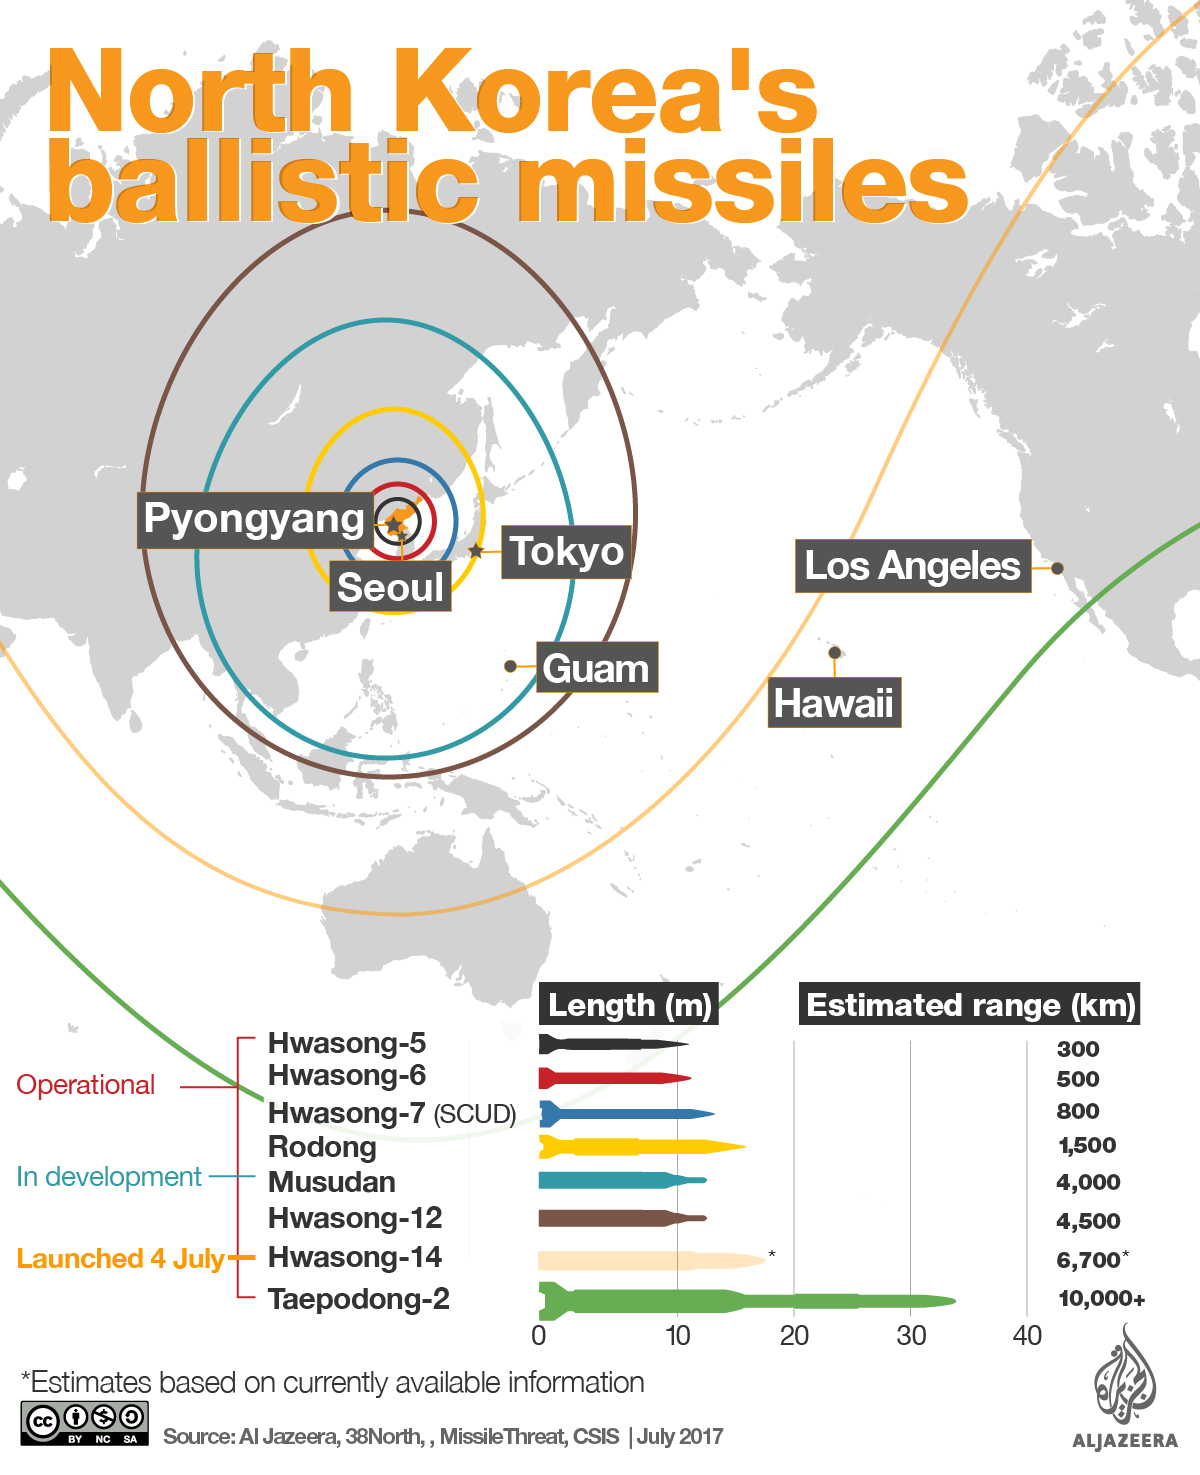 north korea missile test range infographic